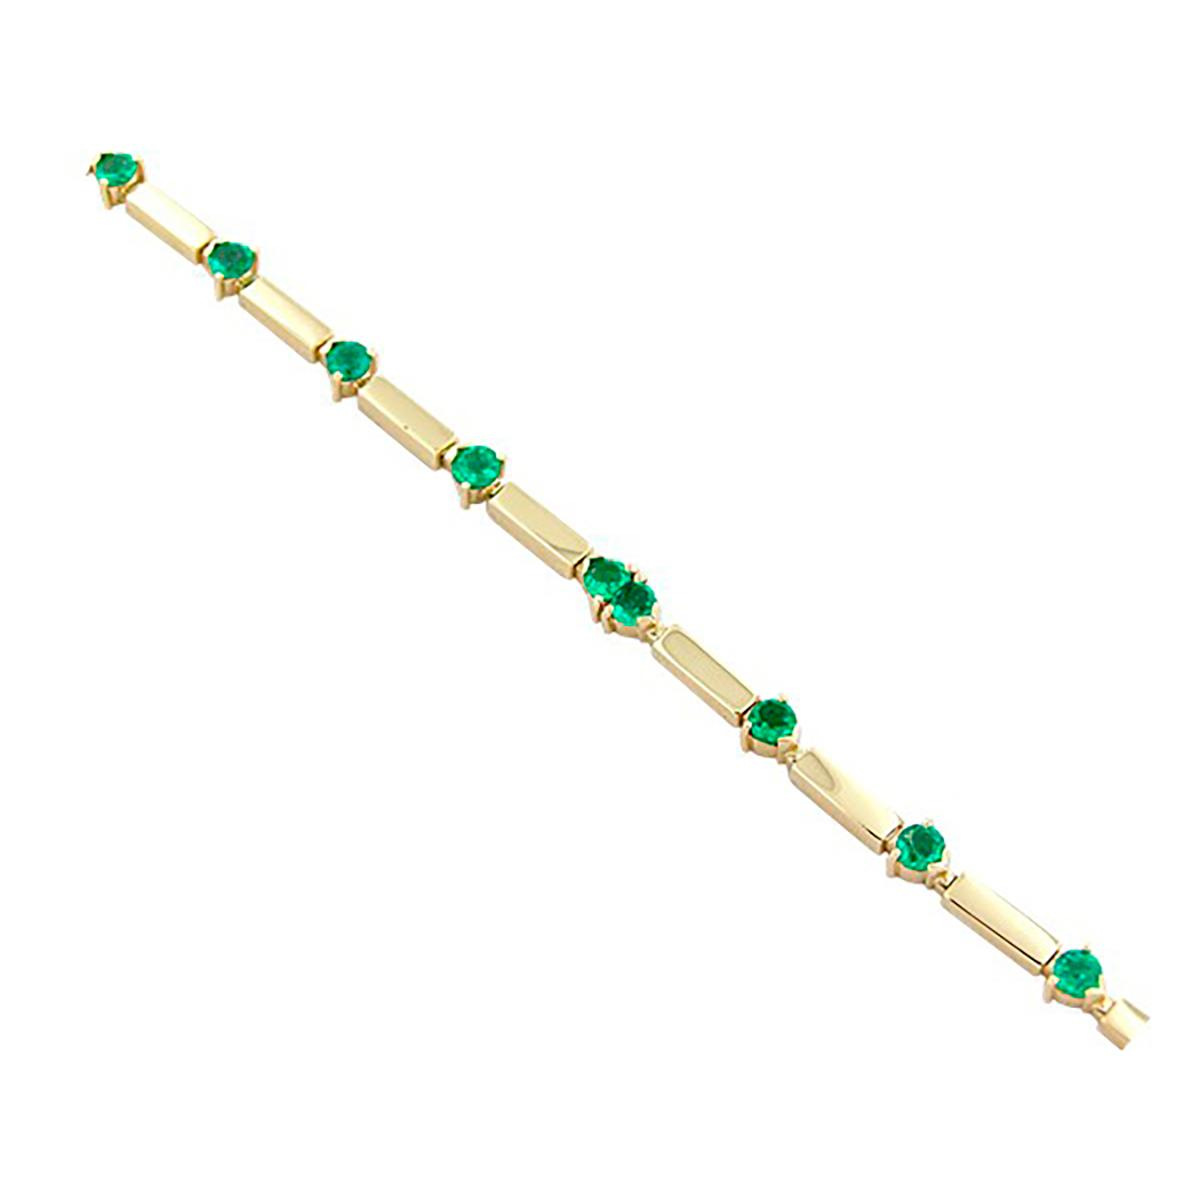 emerald-bracelet-with-long-links-in-18k-gold-with-12-round-cut-natural-emeralds